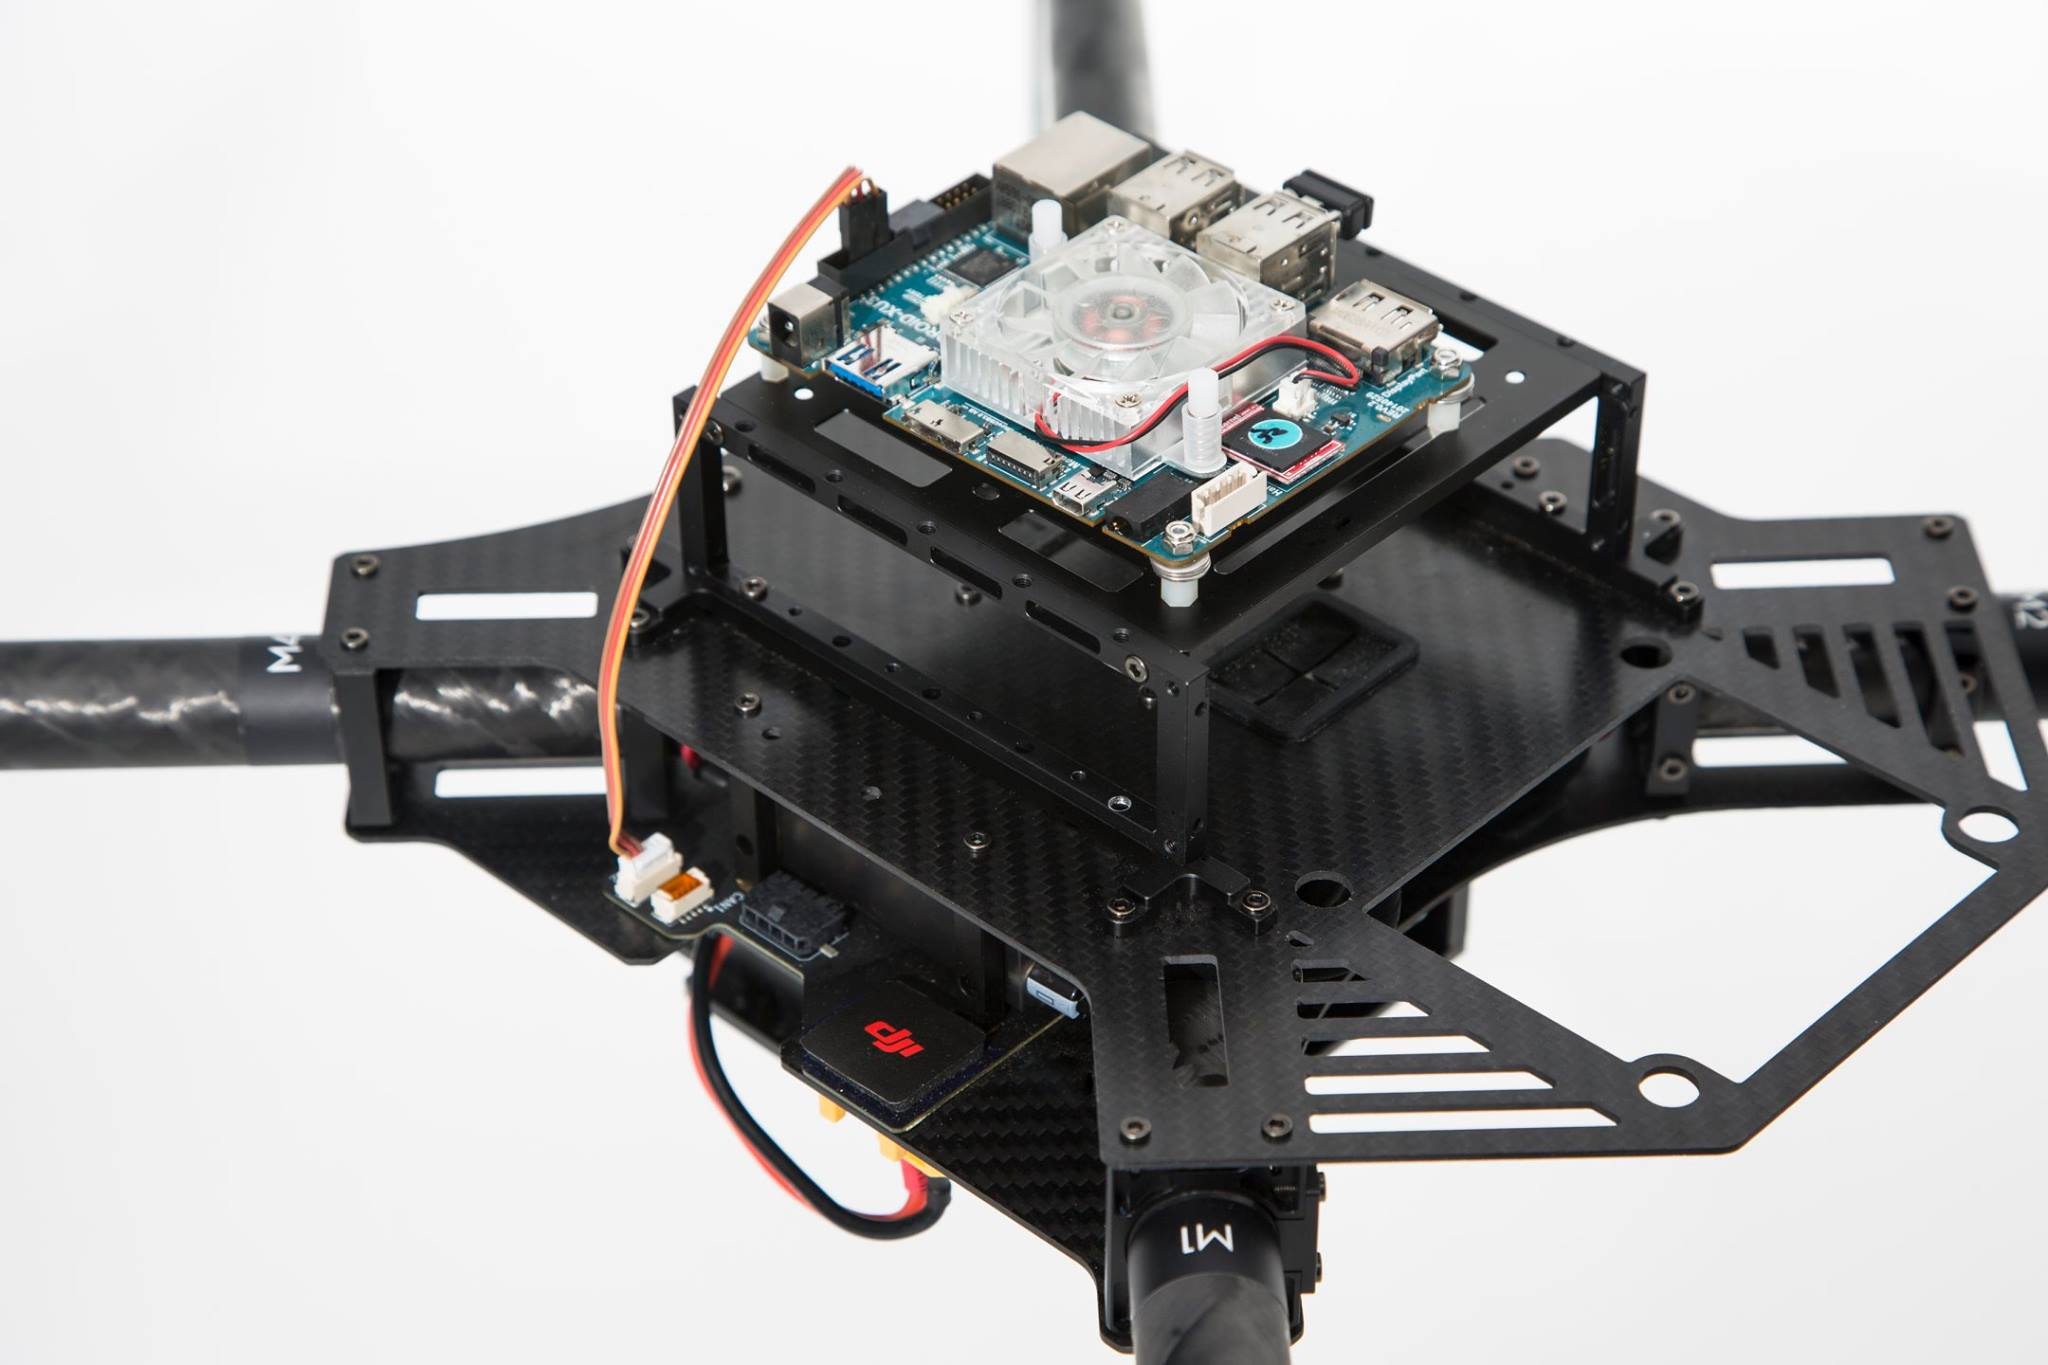 DJI Matrice Flight Control